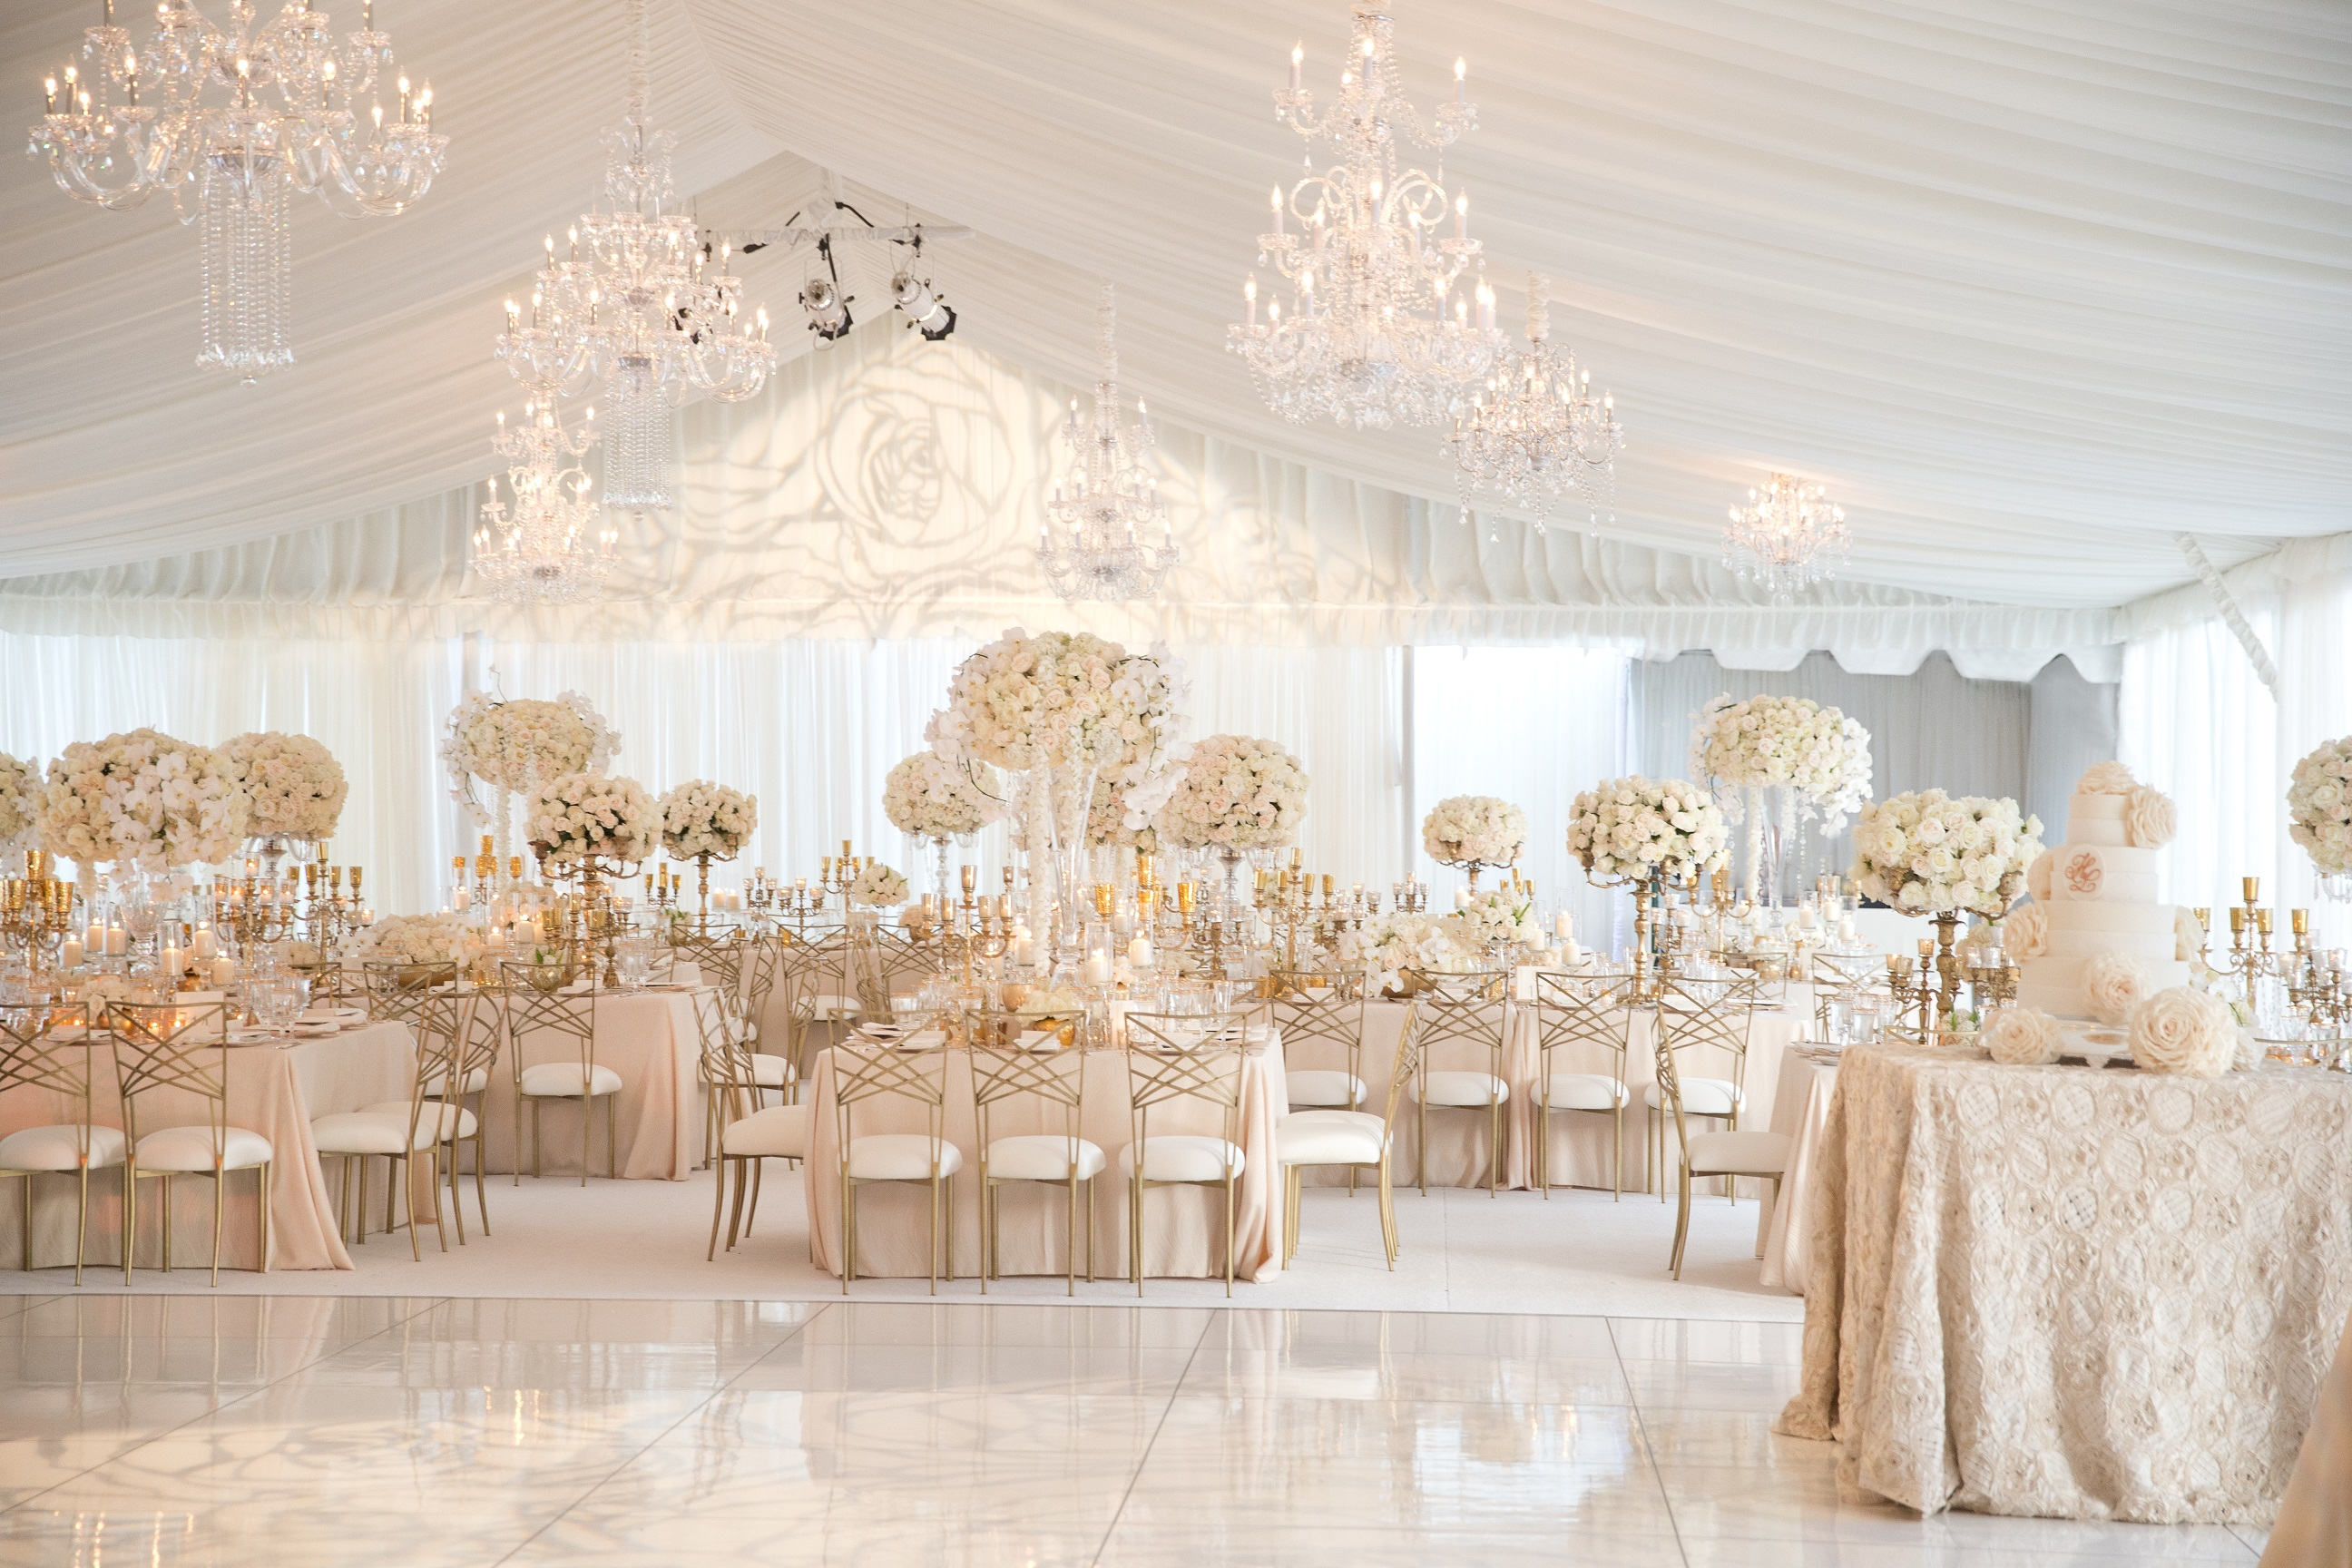 Rose Gold Wedding Ideas For Ceremony Reception Décor: Totul In Alb